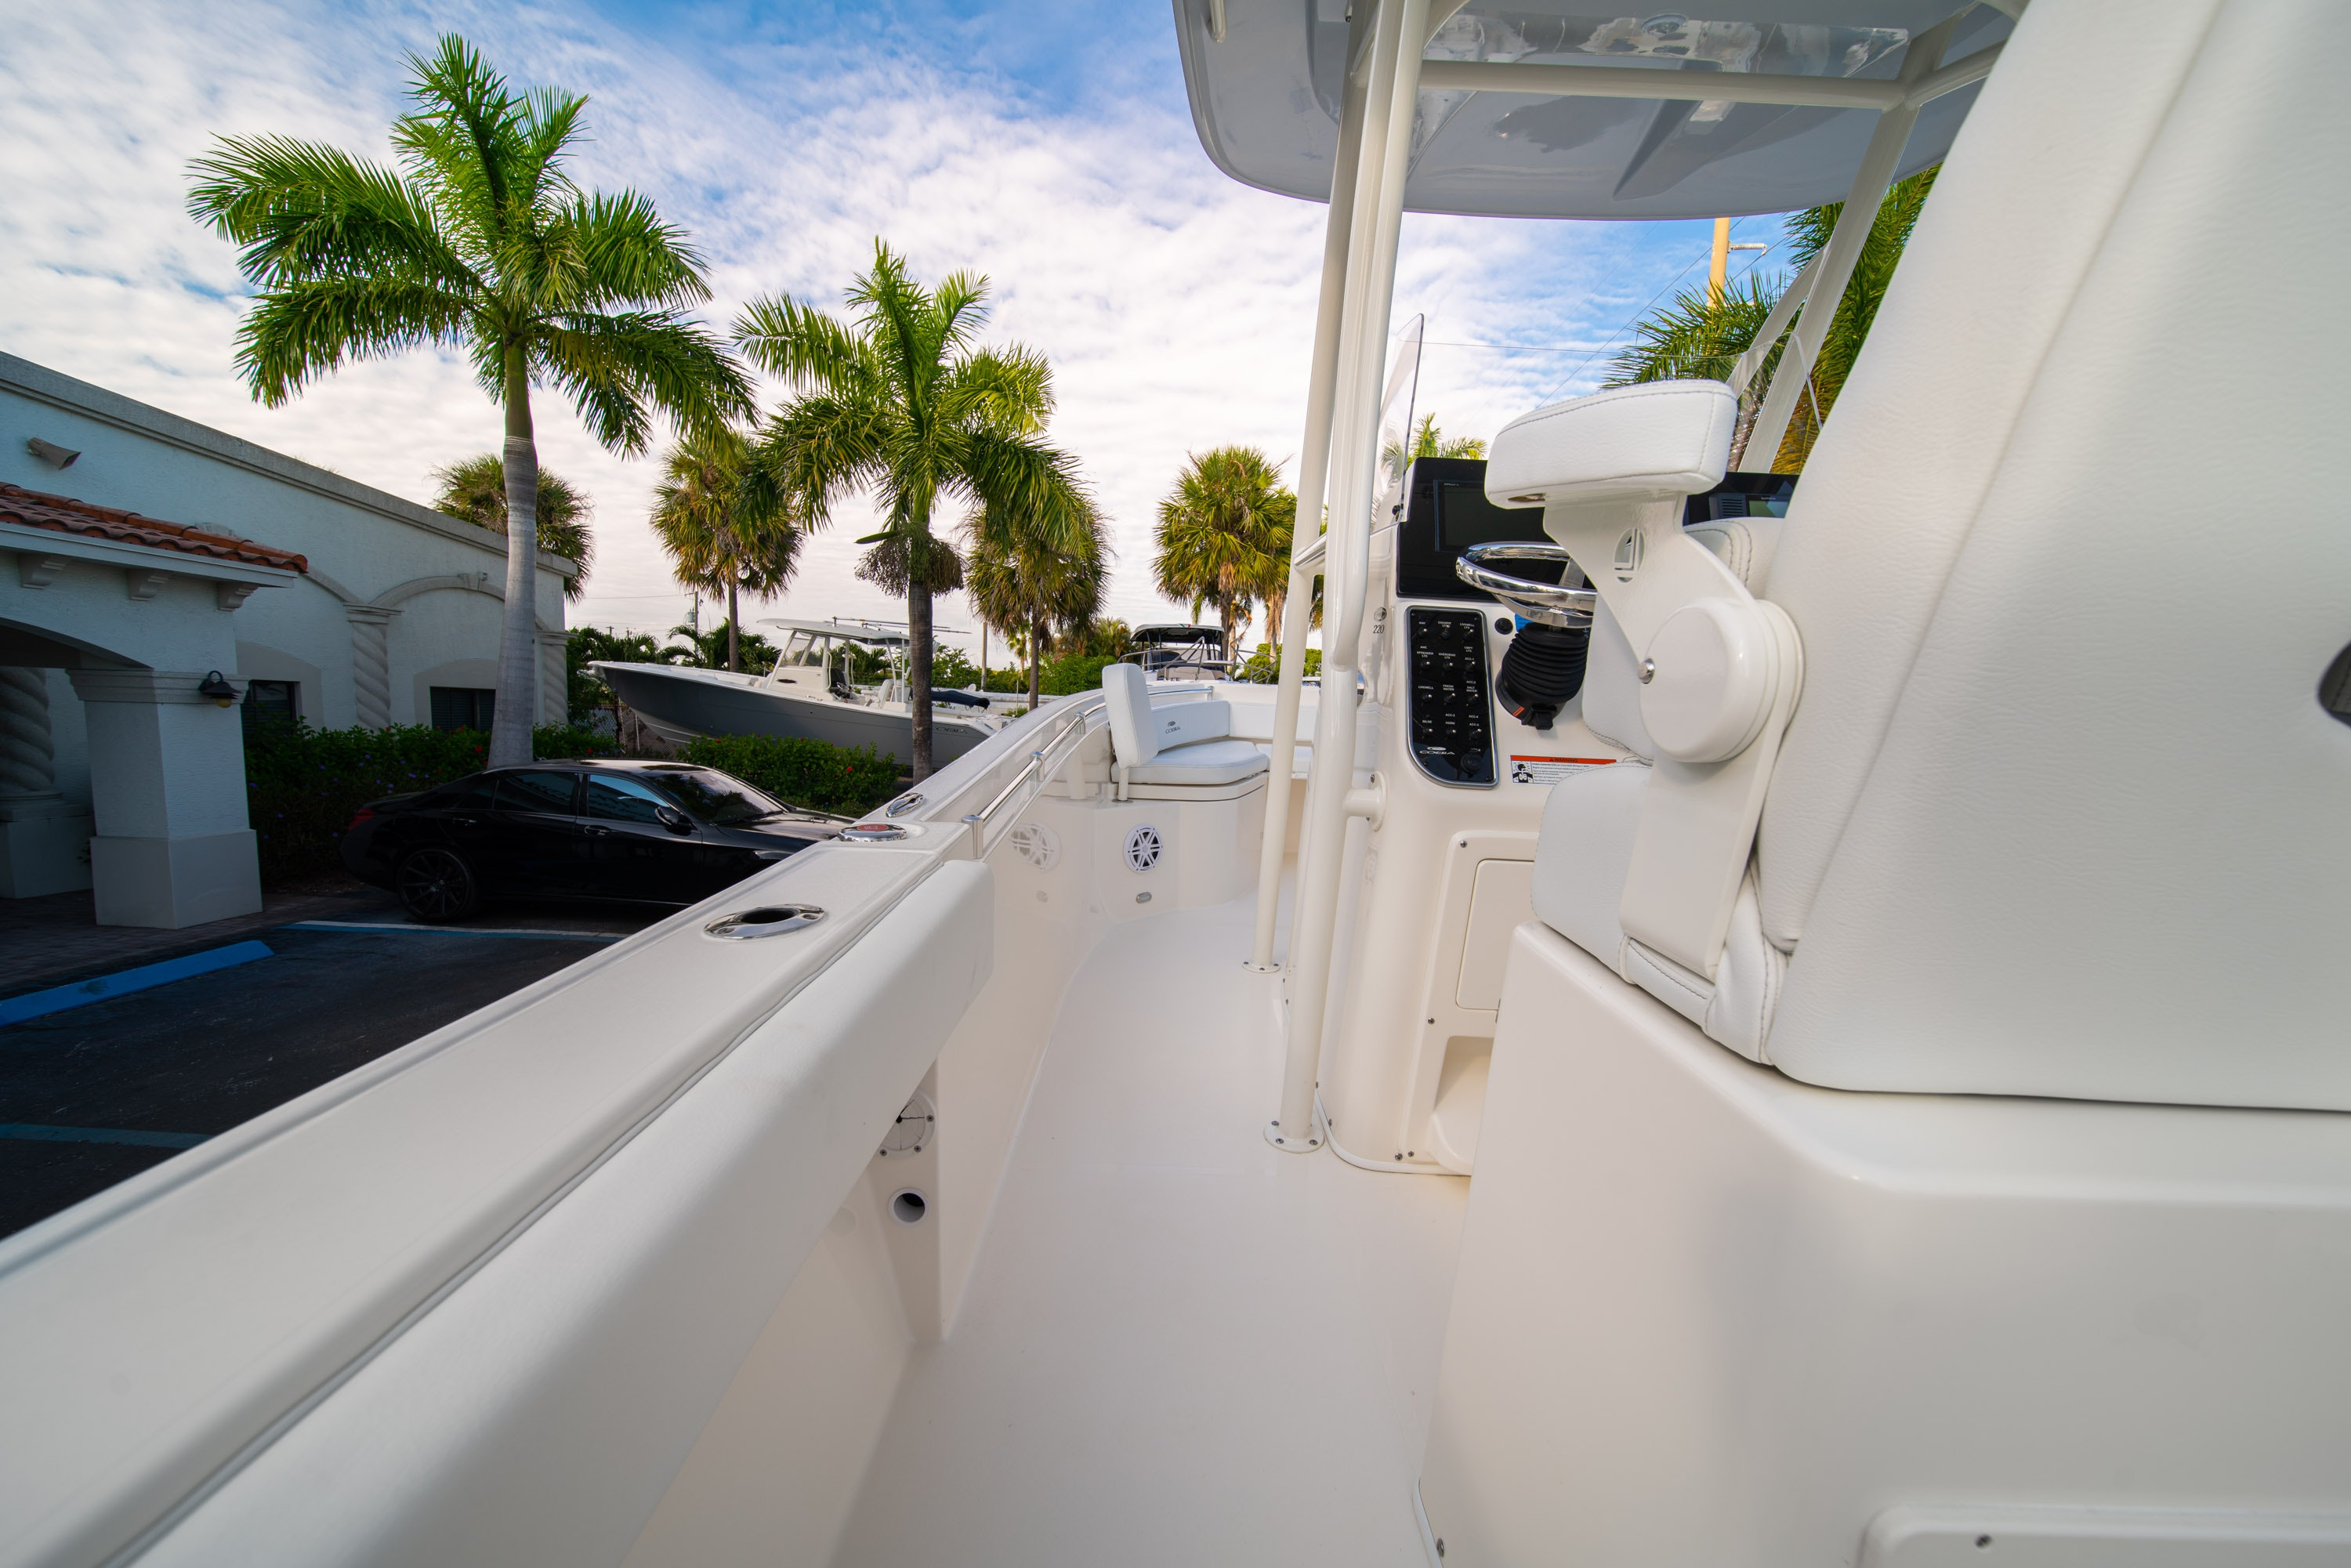 Thumbnail 16 for New 2020 Cobia 220 CC boat for sale in West Palm Beach, FL